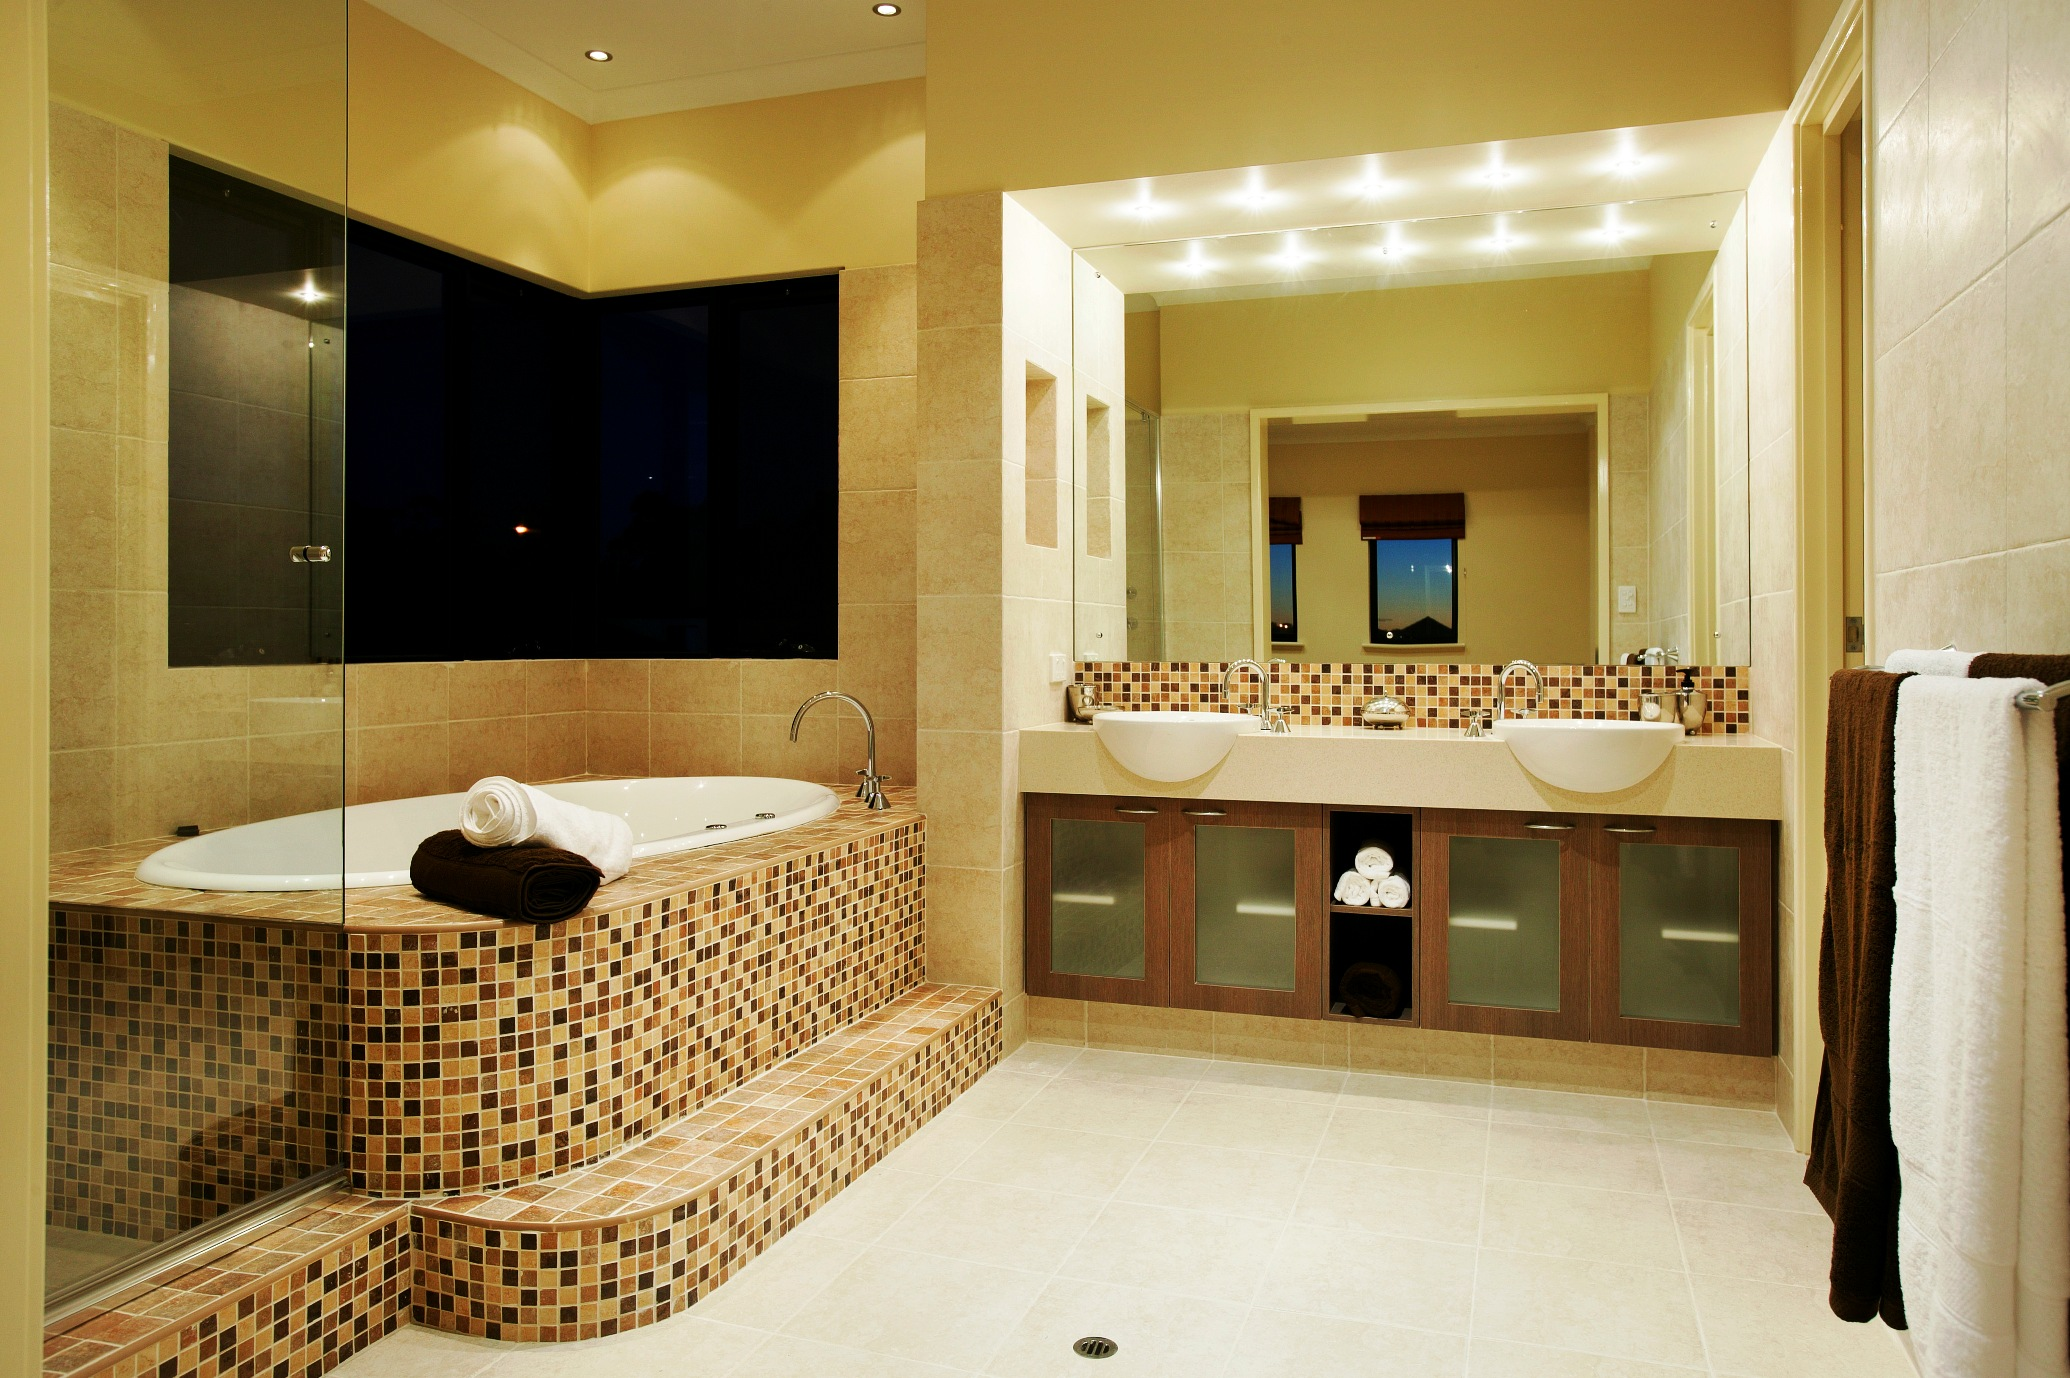 Outstanding Bathroom Design Ideas 2070 x 1378 · 789 kB · jpeg